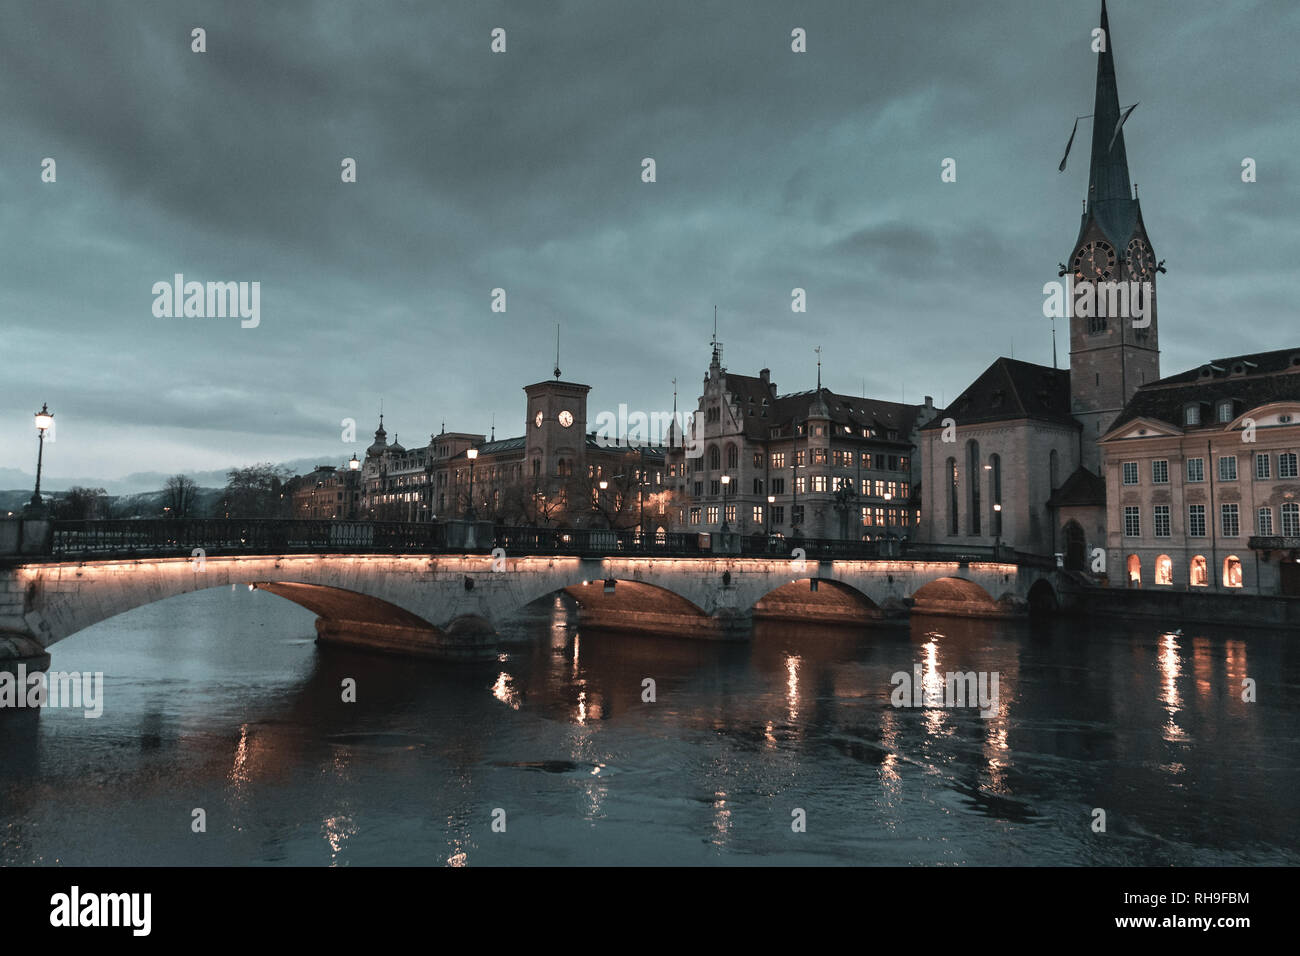 view of the old town of Zurich on Limmat river with Fraumünster church in the evening dawn - Stock Image